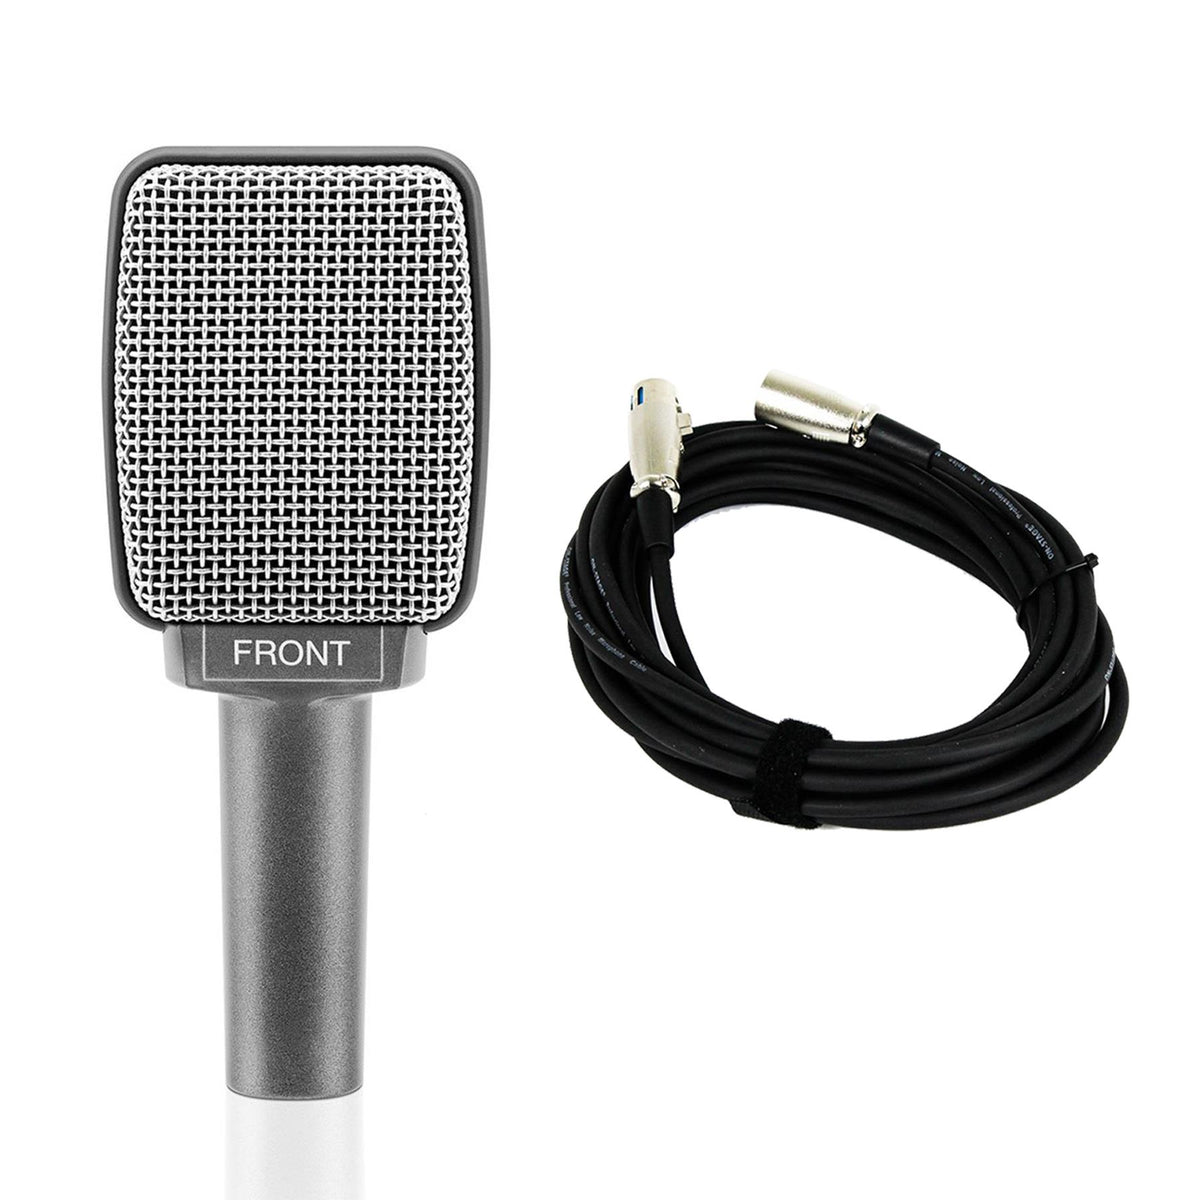 Sennheiser E609 Microphone Bundle with 20-foot XLR Cable